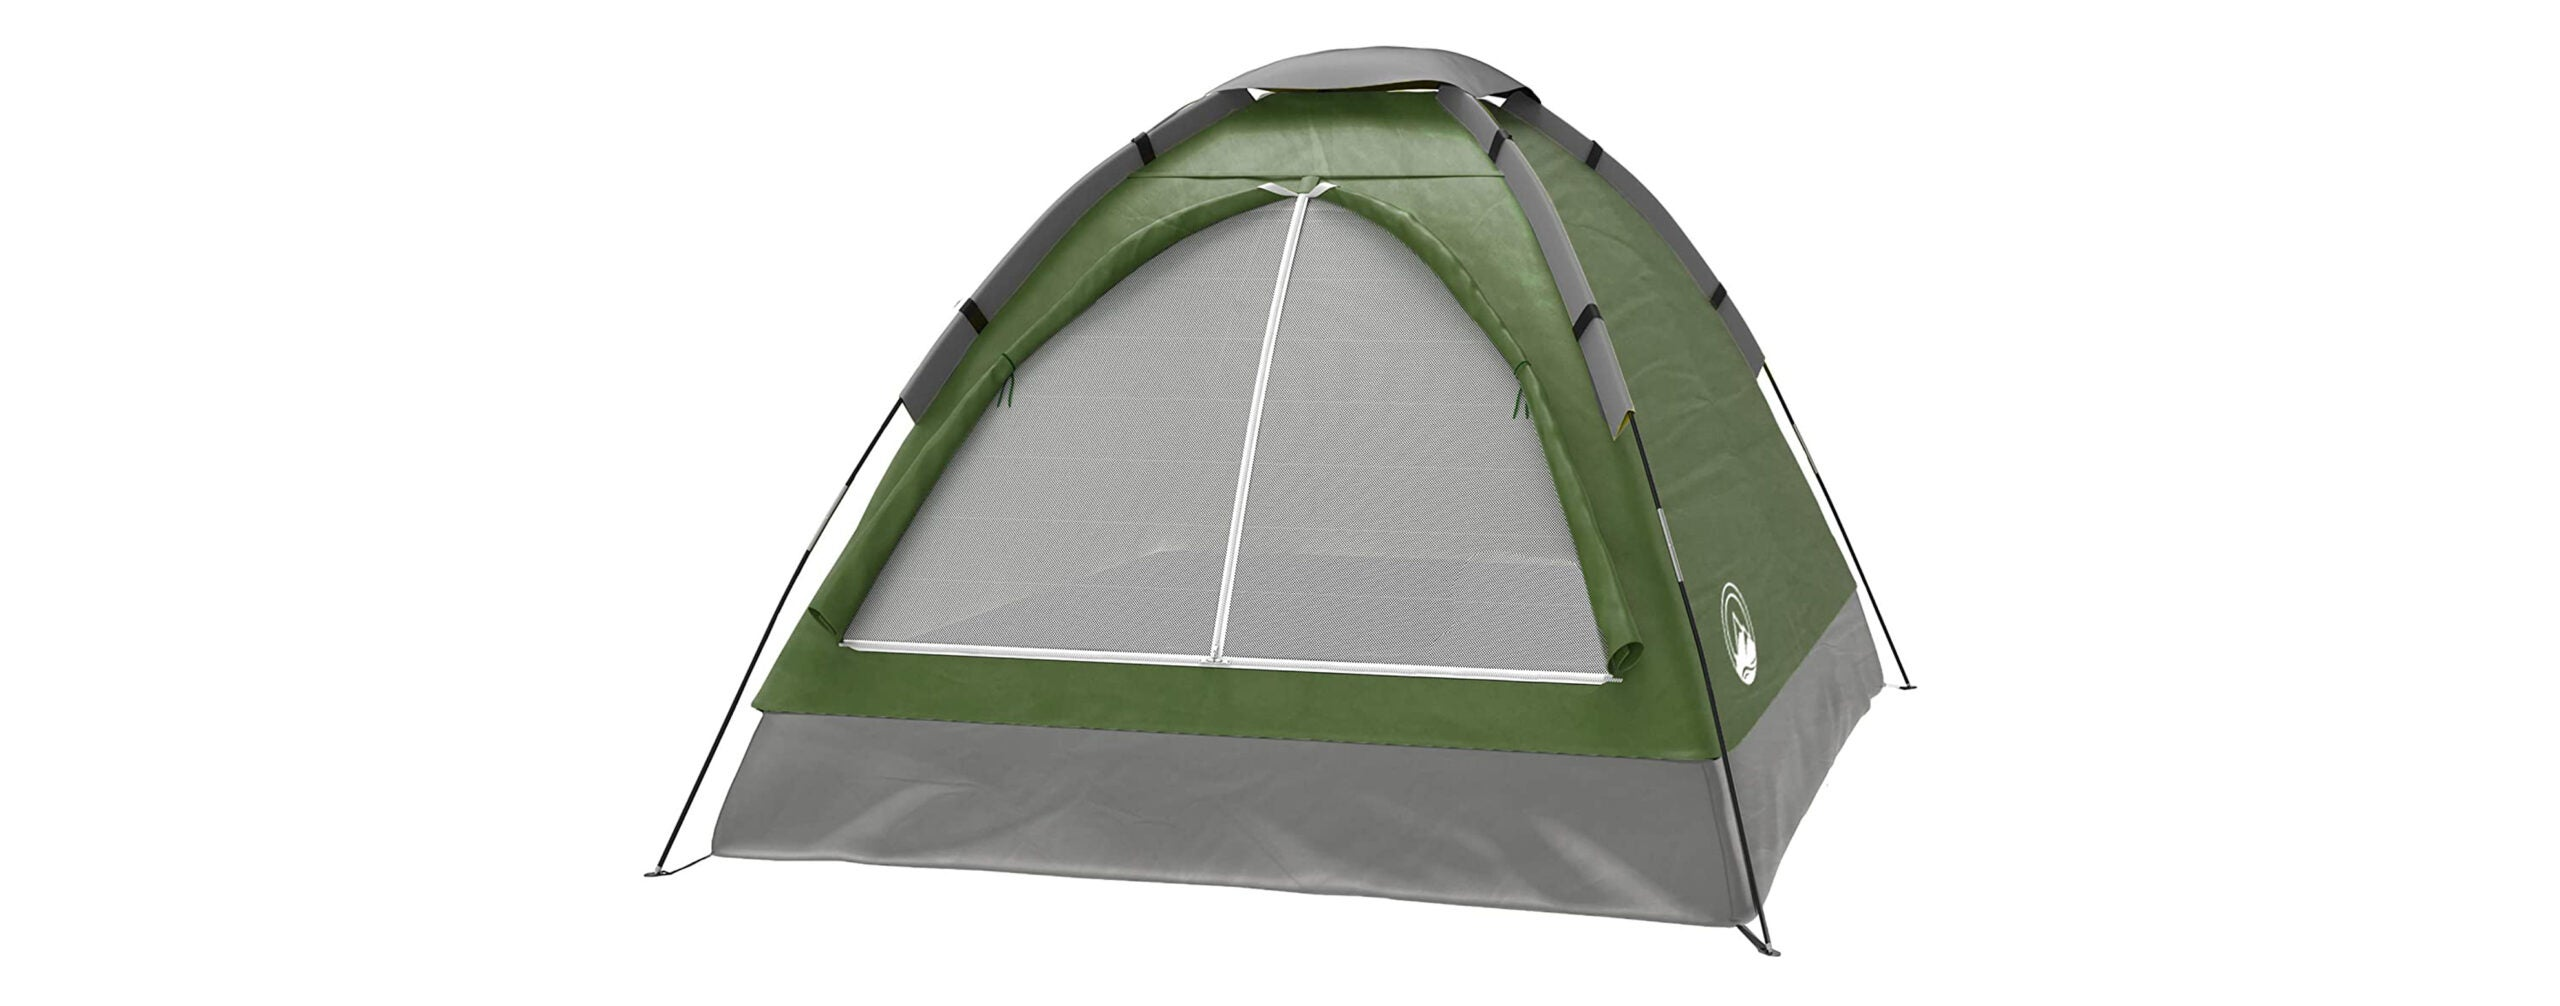 The Best Camping Tents (Review & Buying Guide) of 2021